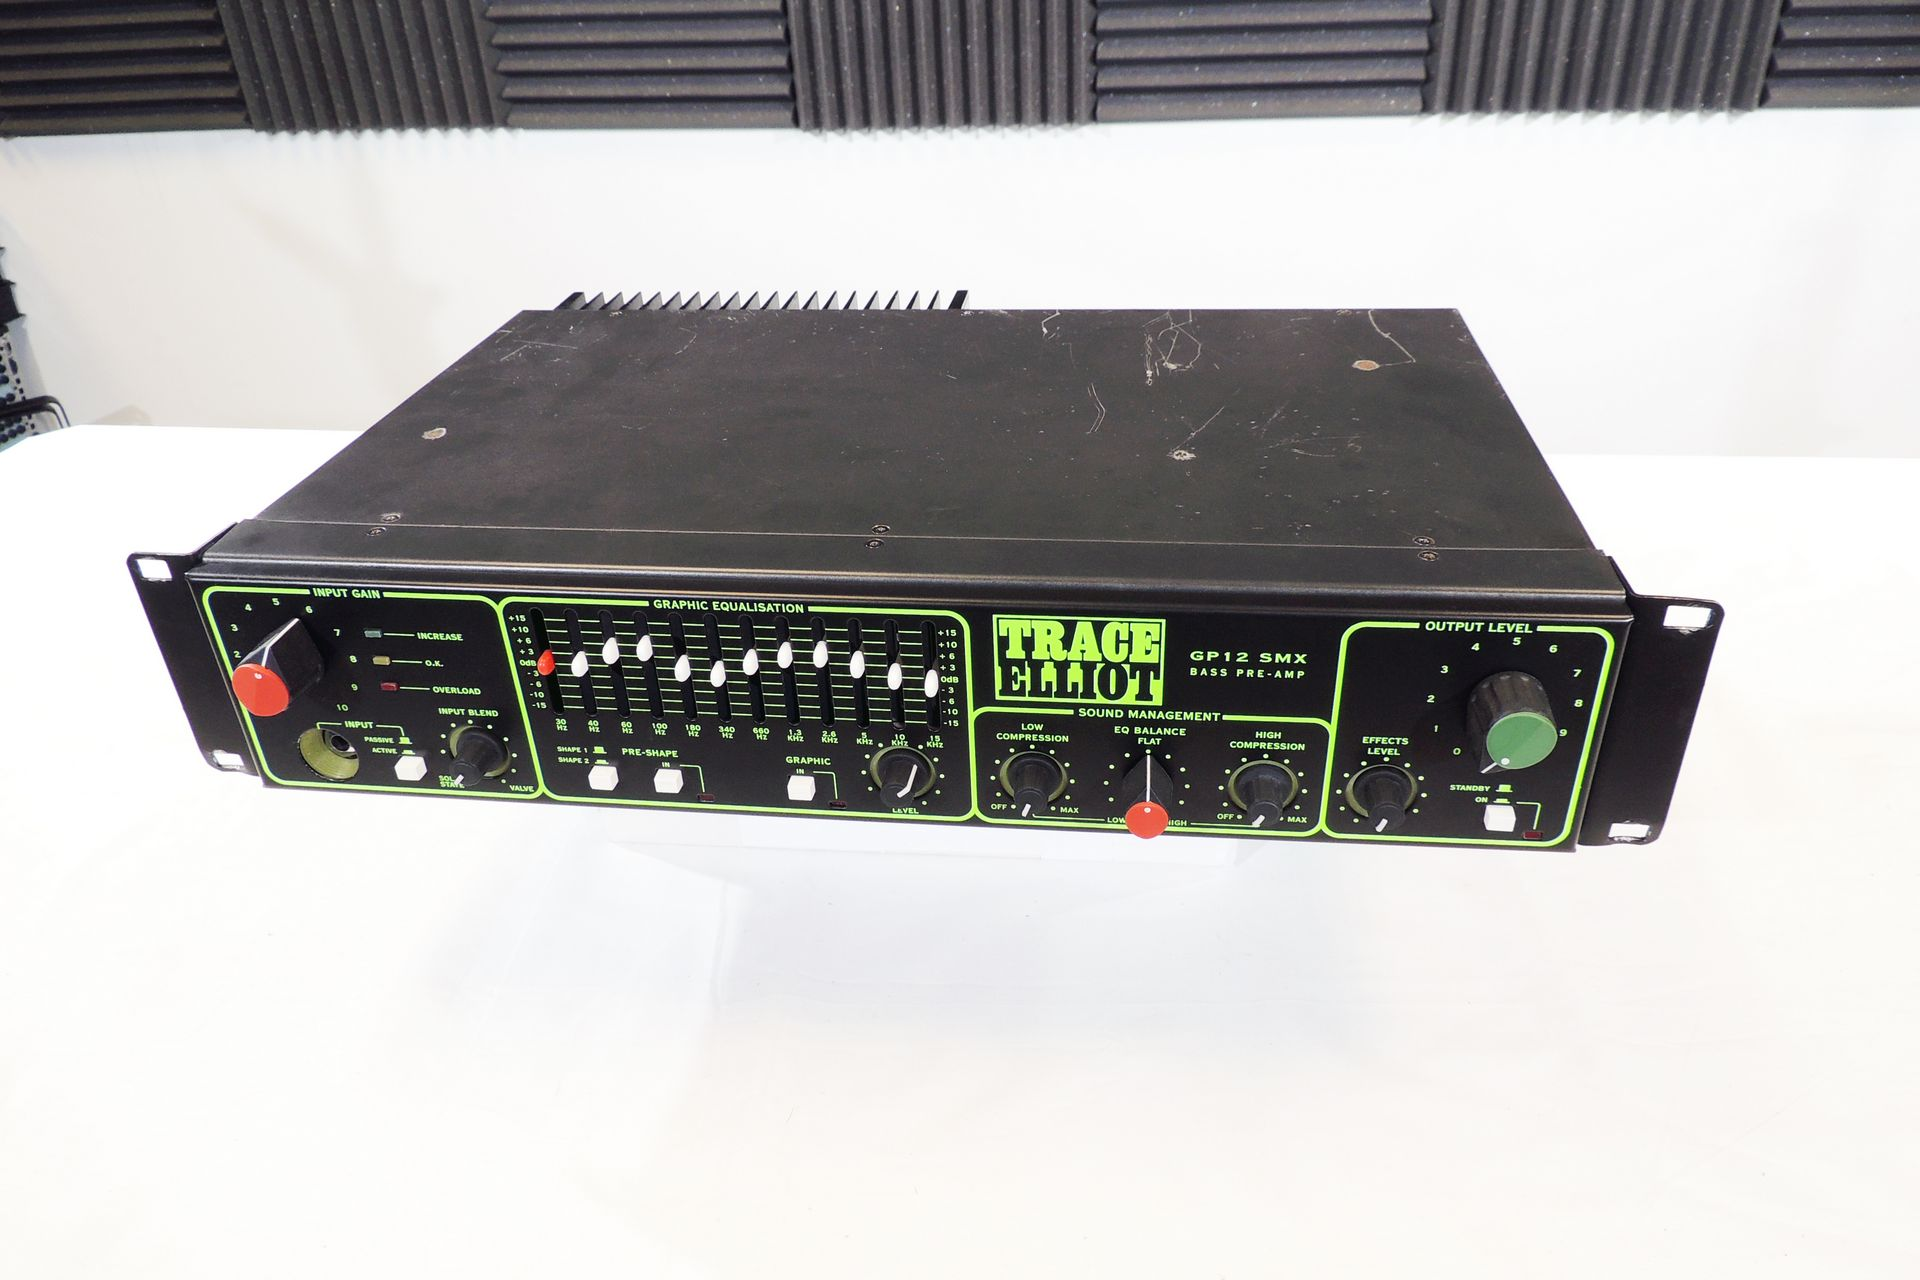 TRACE ELLIOT GP12 SMX CLASSIC EIGHTIES BASS AMP